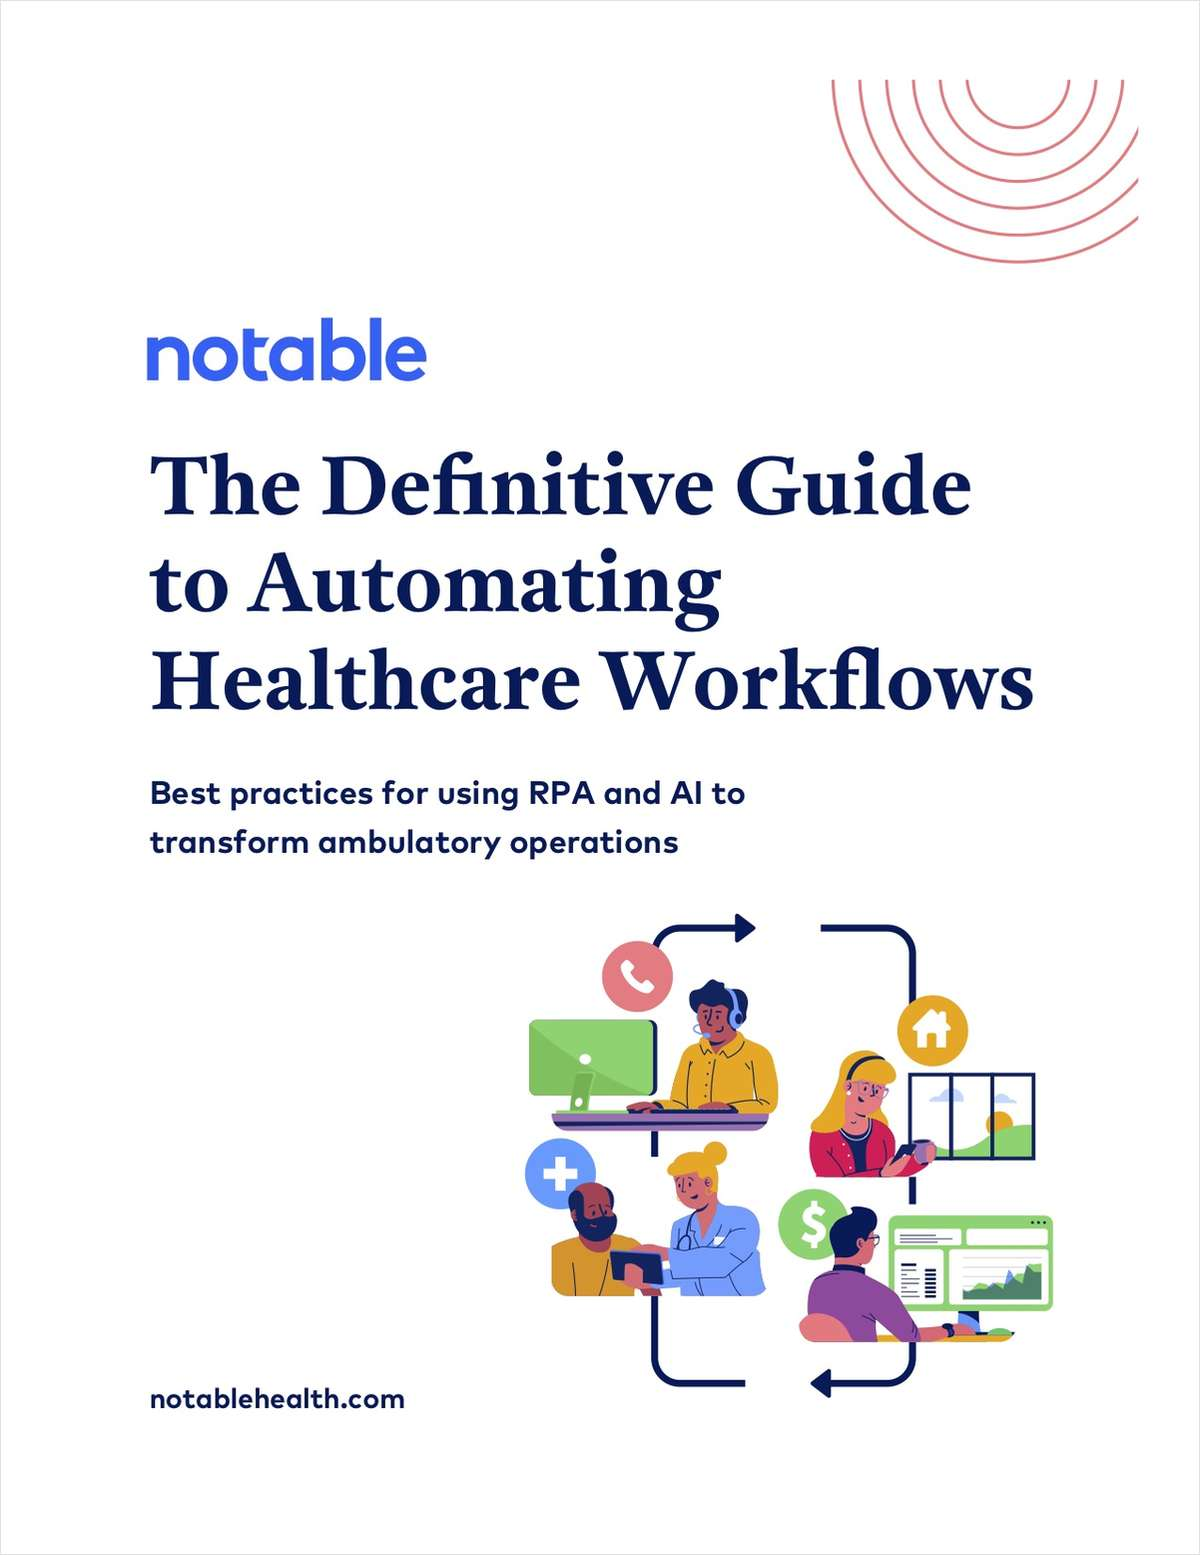 The Definitive Guide to Automating Healthcare Workflows